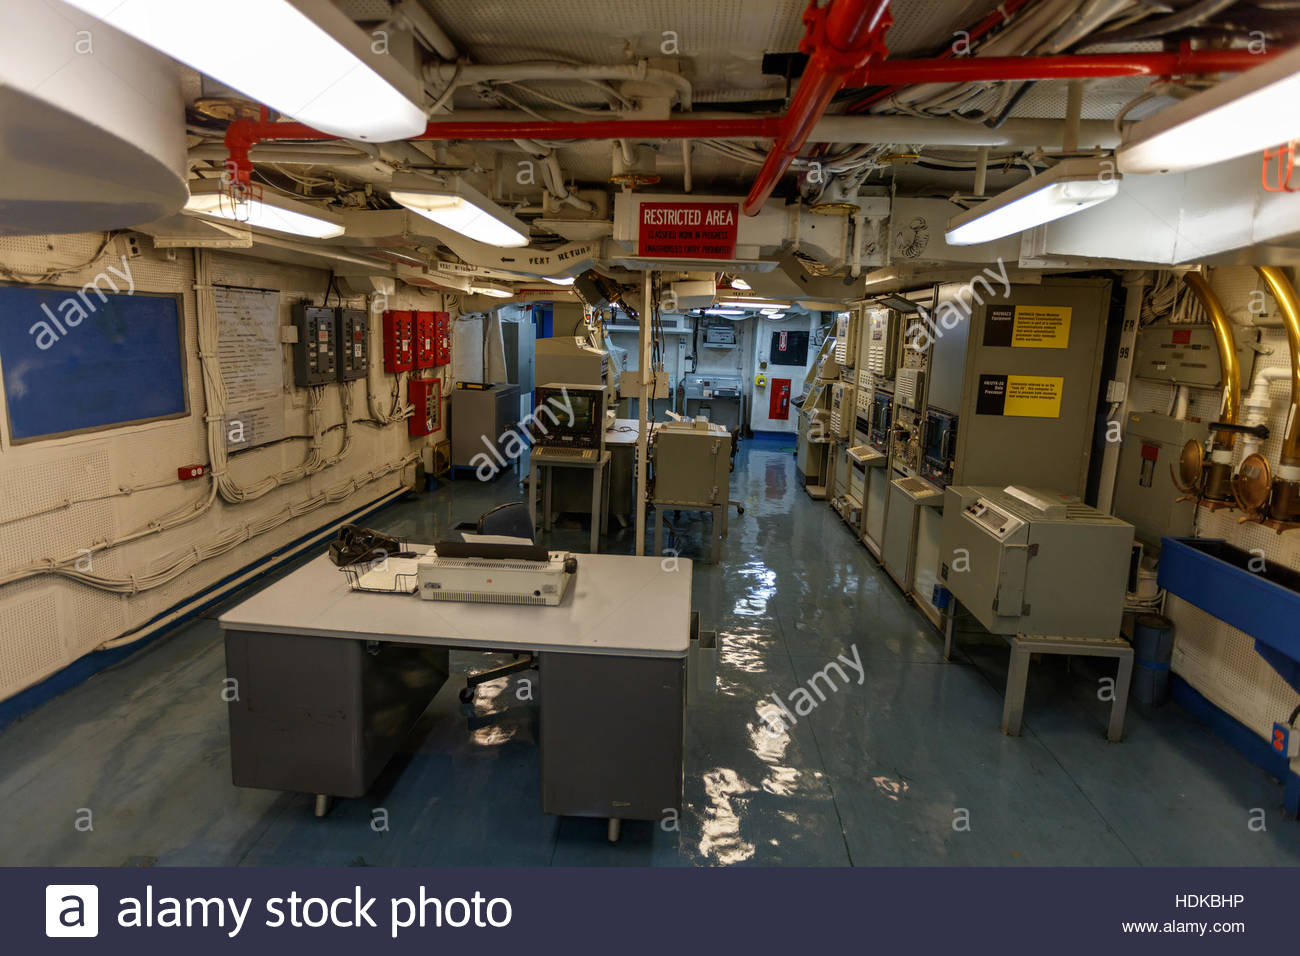 Midway Aircraft Carrier Museum Bridge Interior In San Diego Usa Stock Photo Royalty Free Image